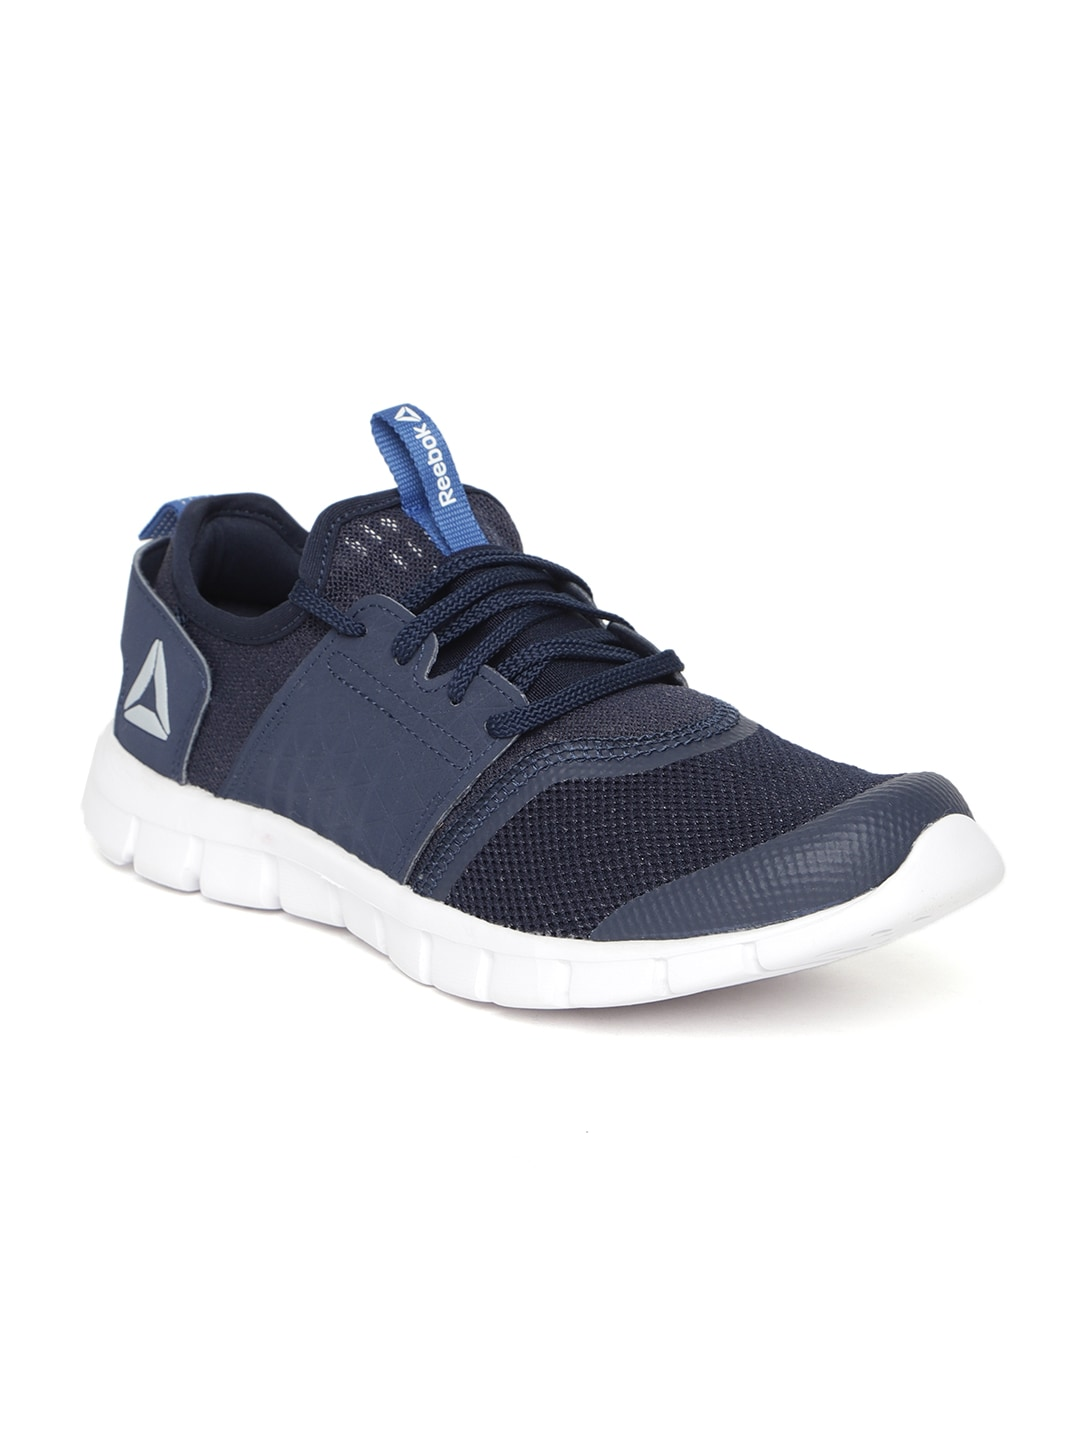 1c9adc941b0b Reebok Shoes - Buy Reebok Shoes For Men   Women Online